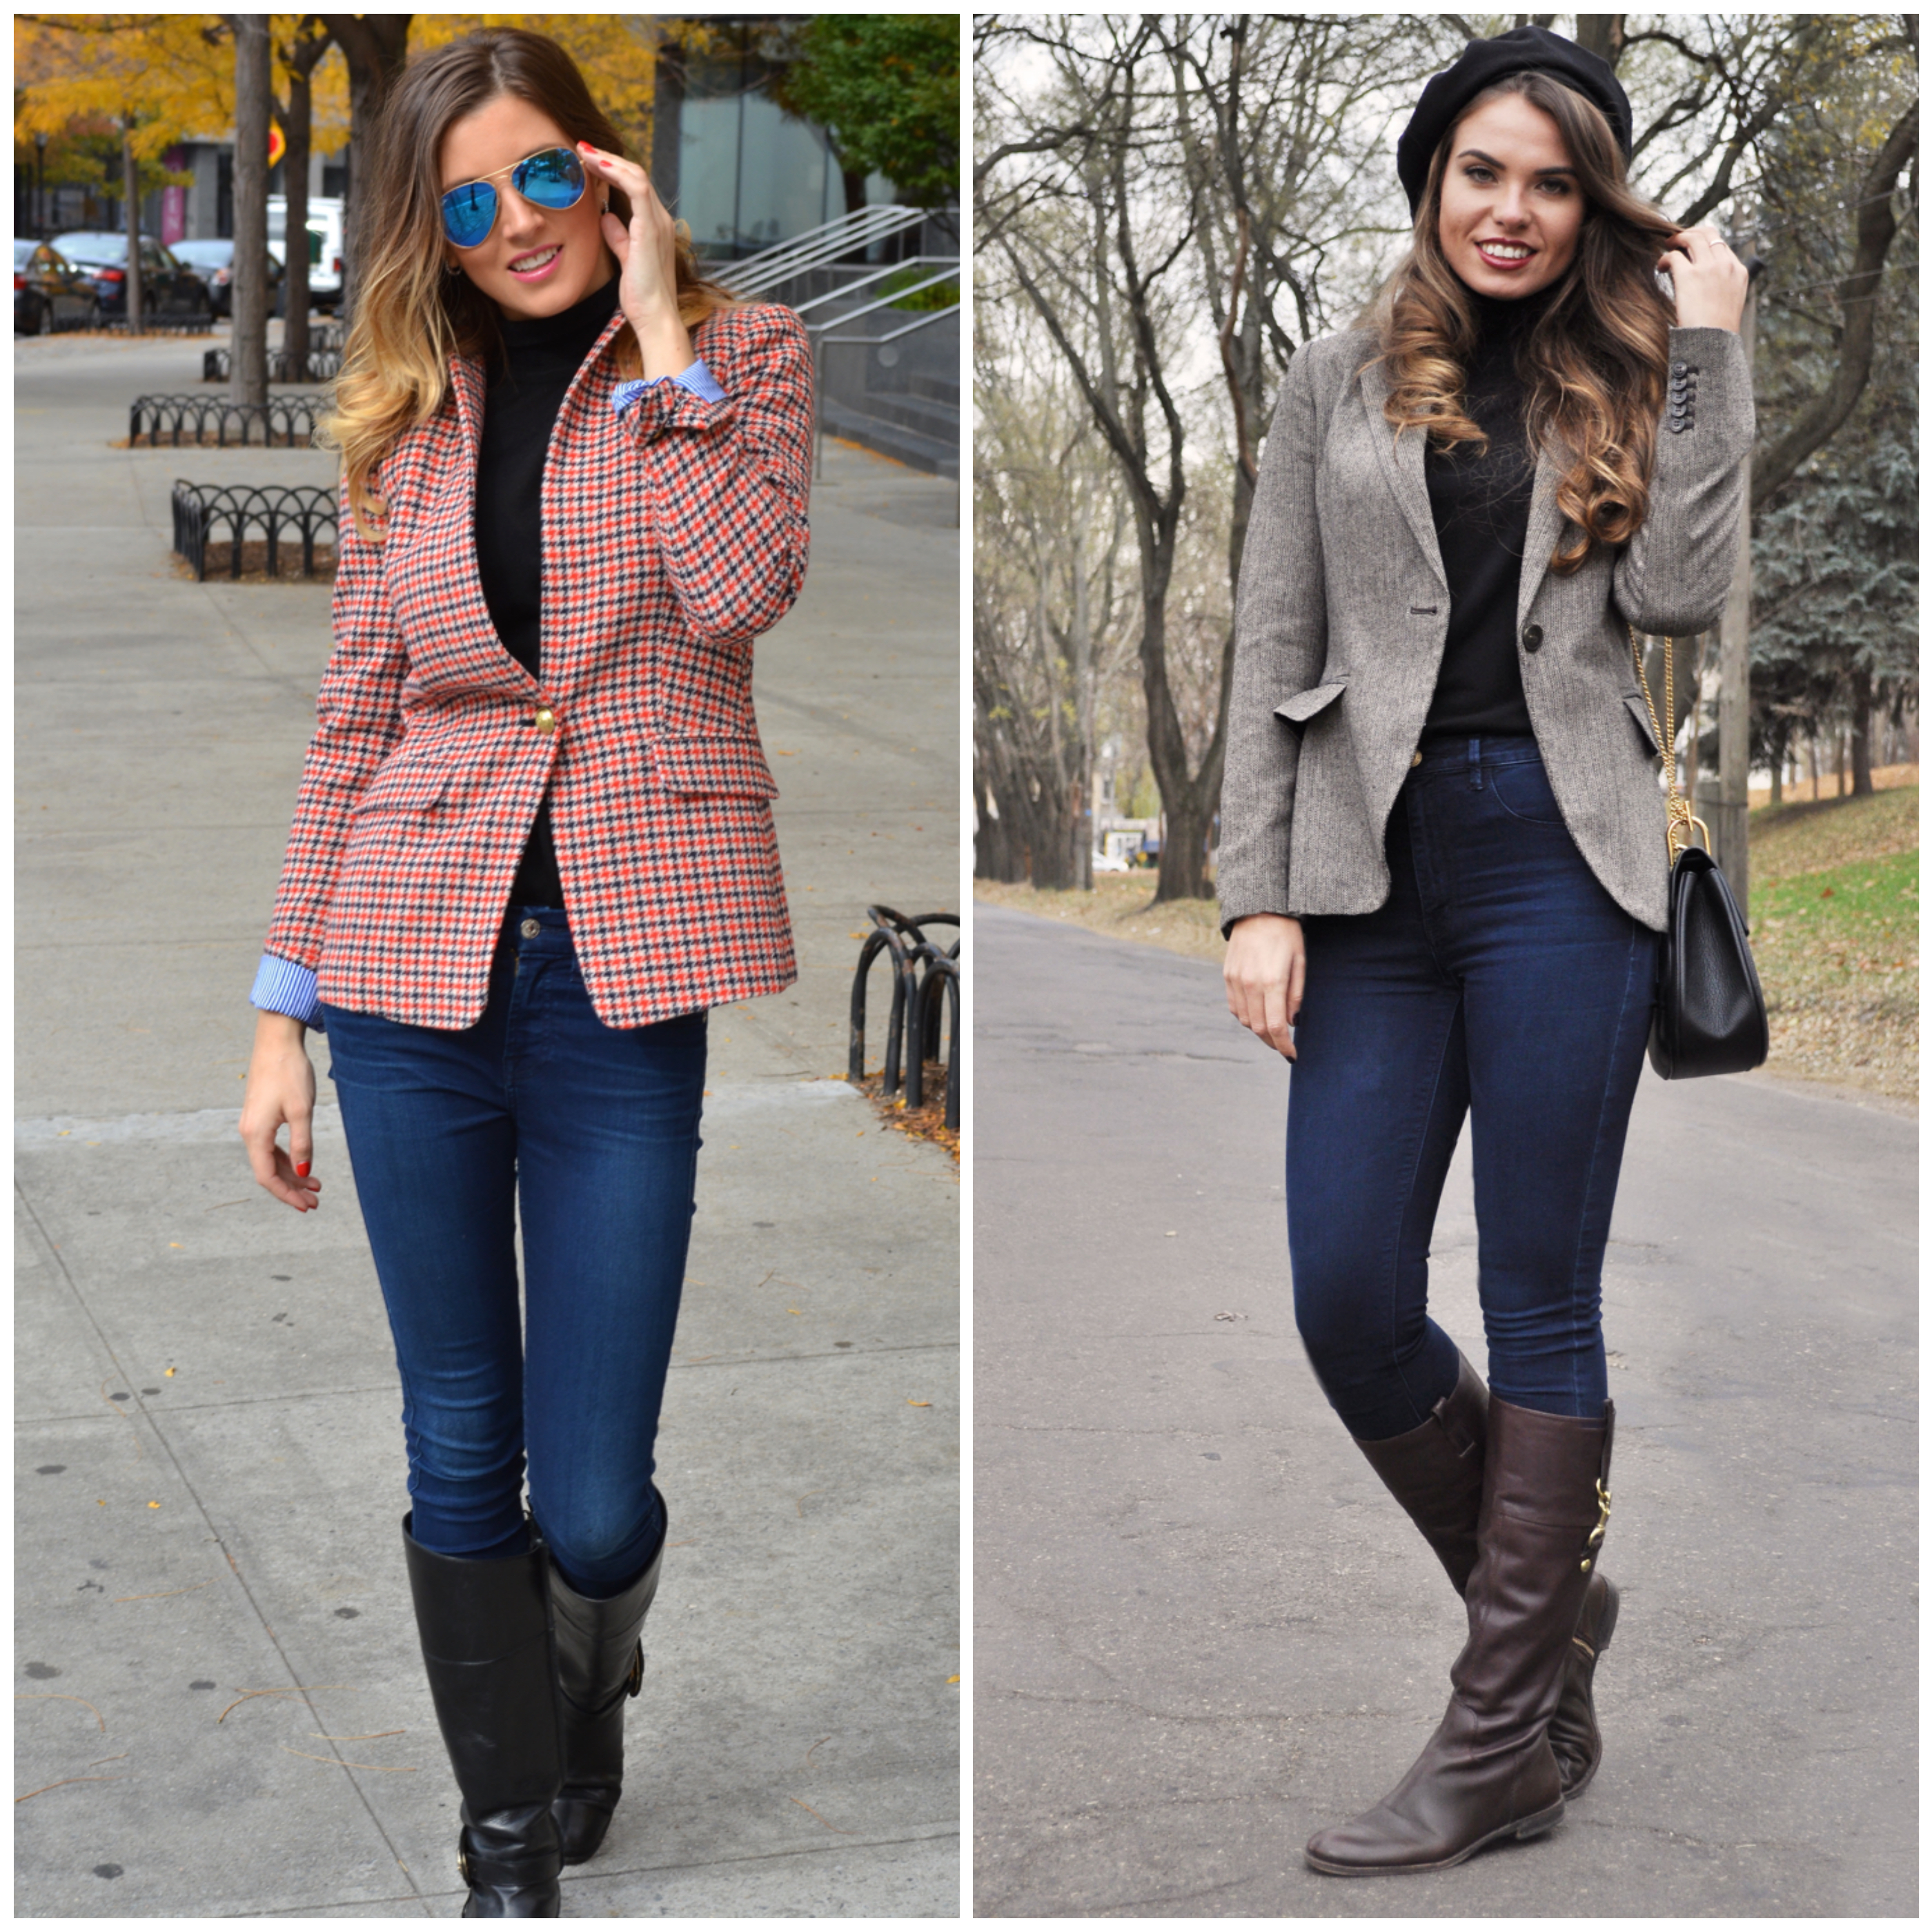 Perfect jacket and boots